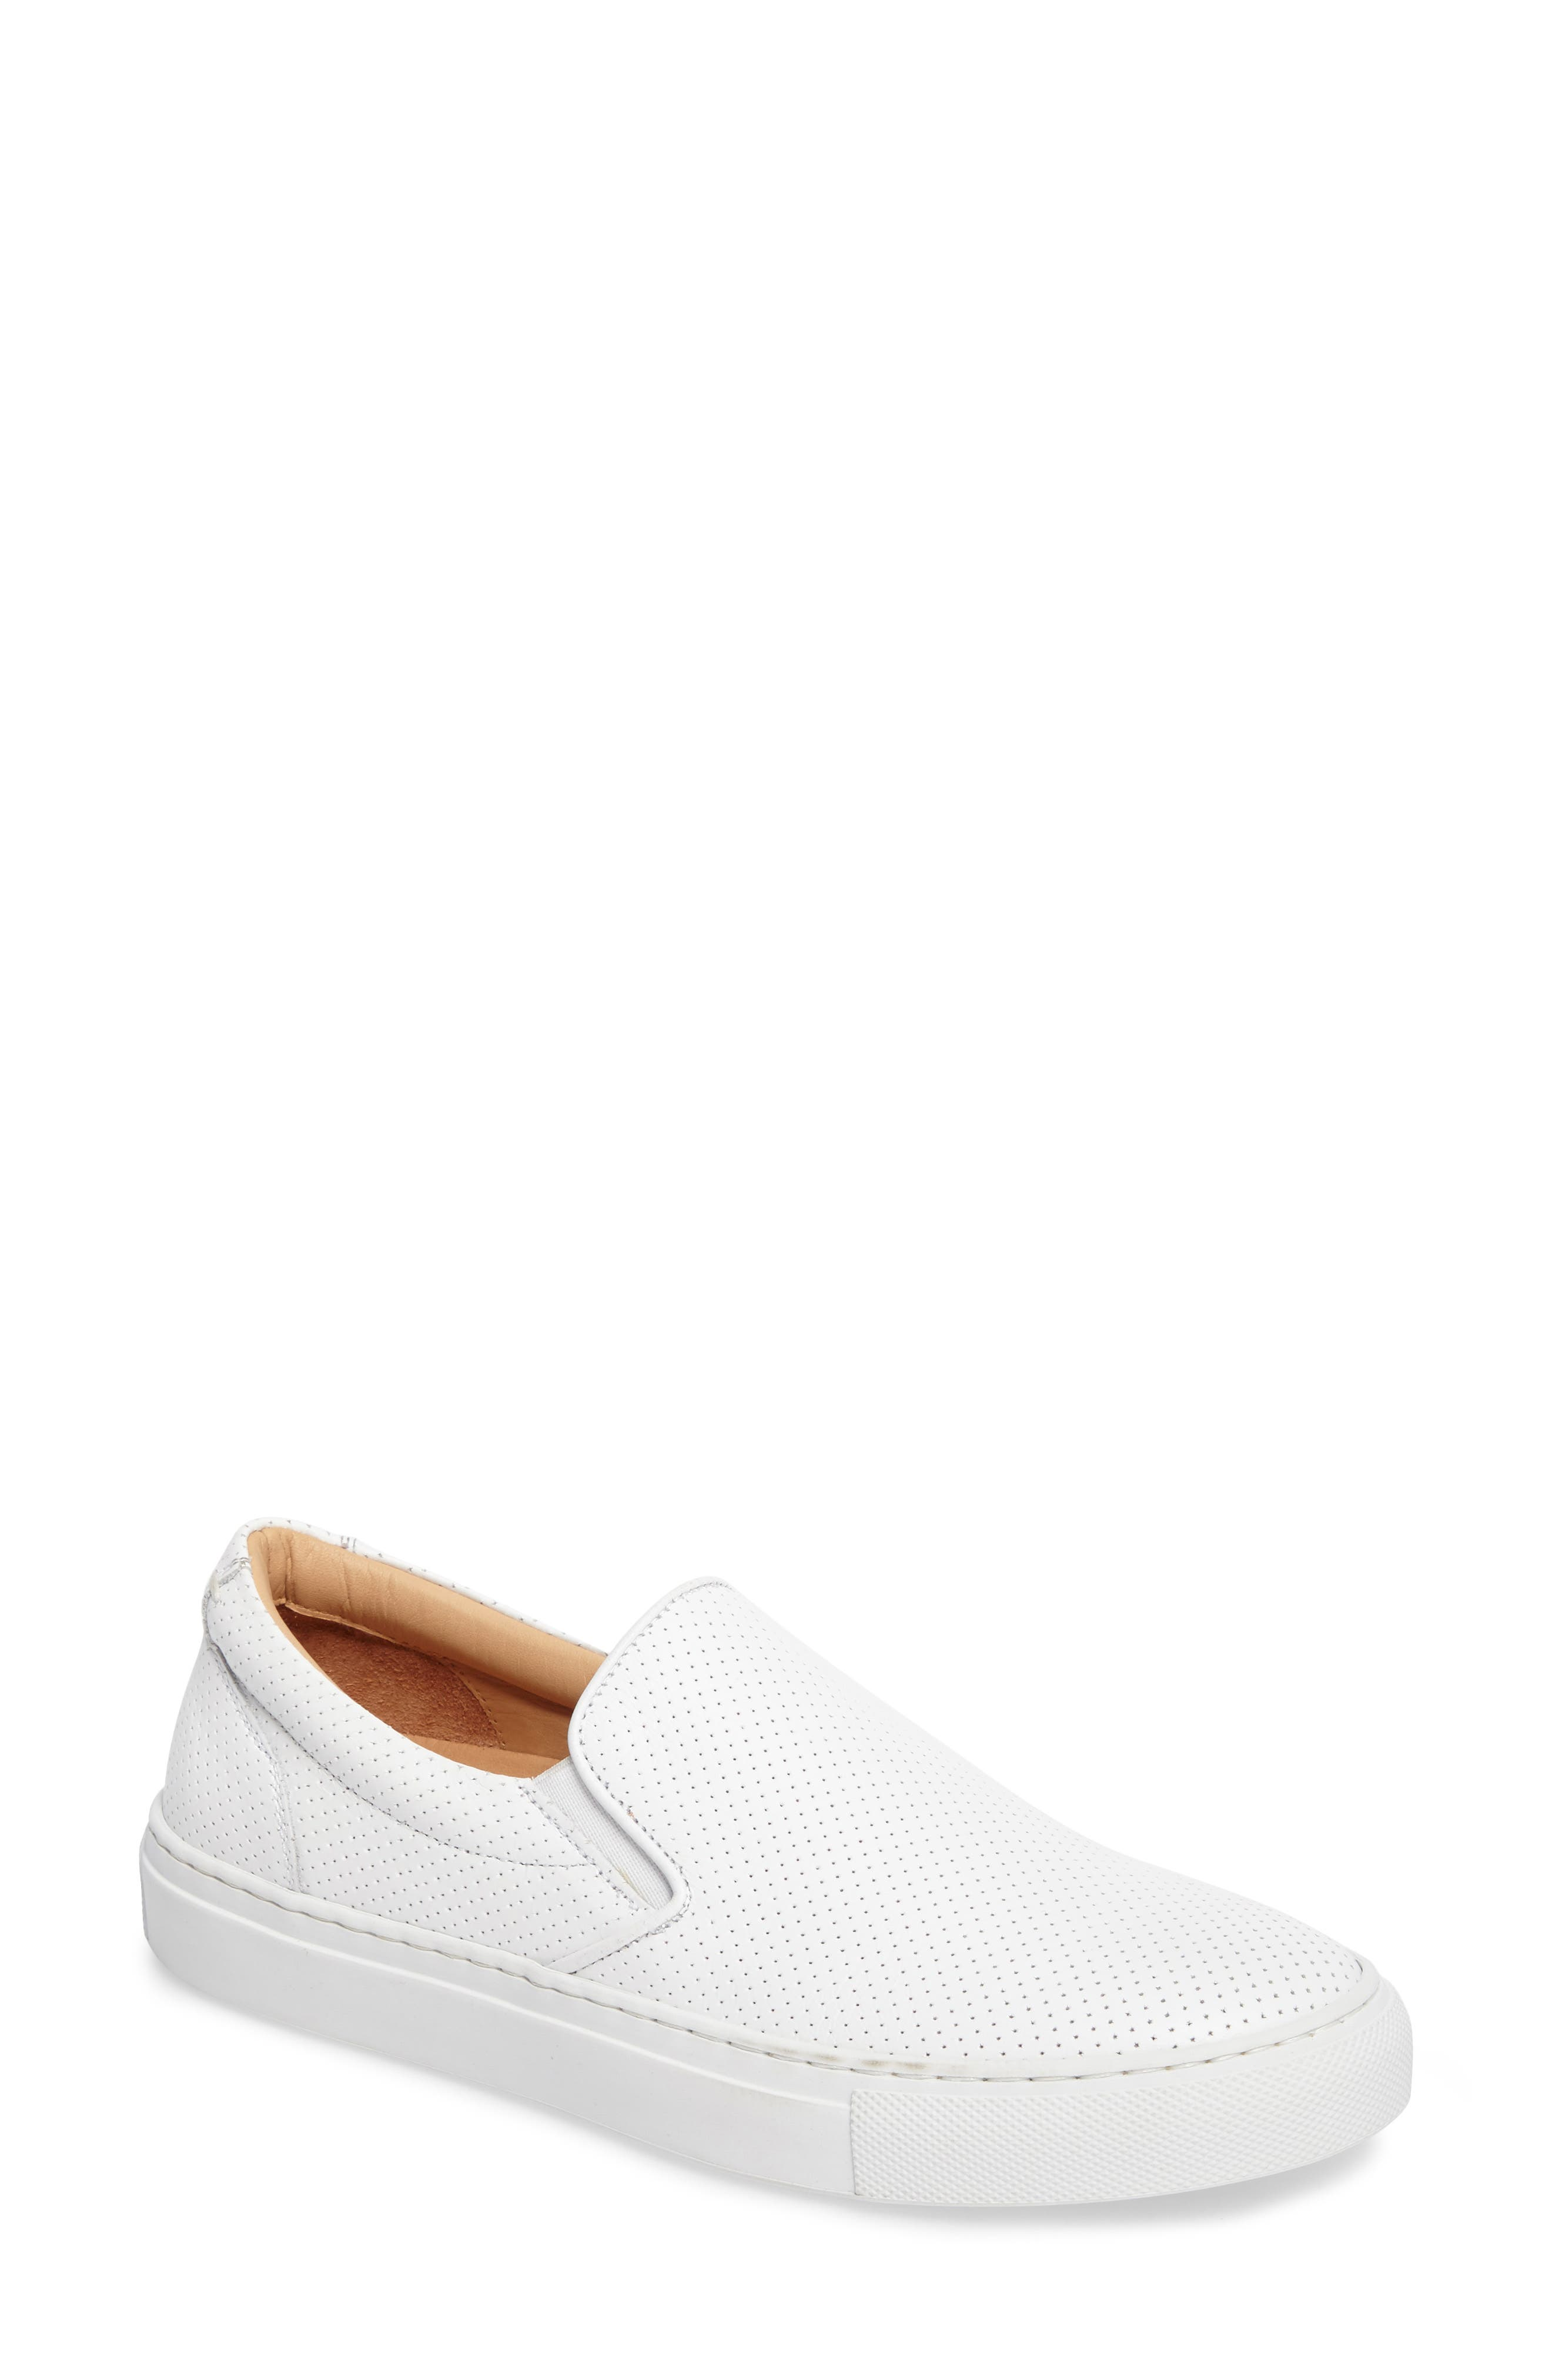 Wooster Slip-On Sneaker,                         Main,                         color, WHITE PERFORATED